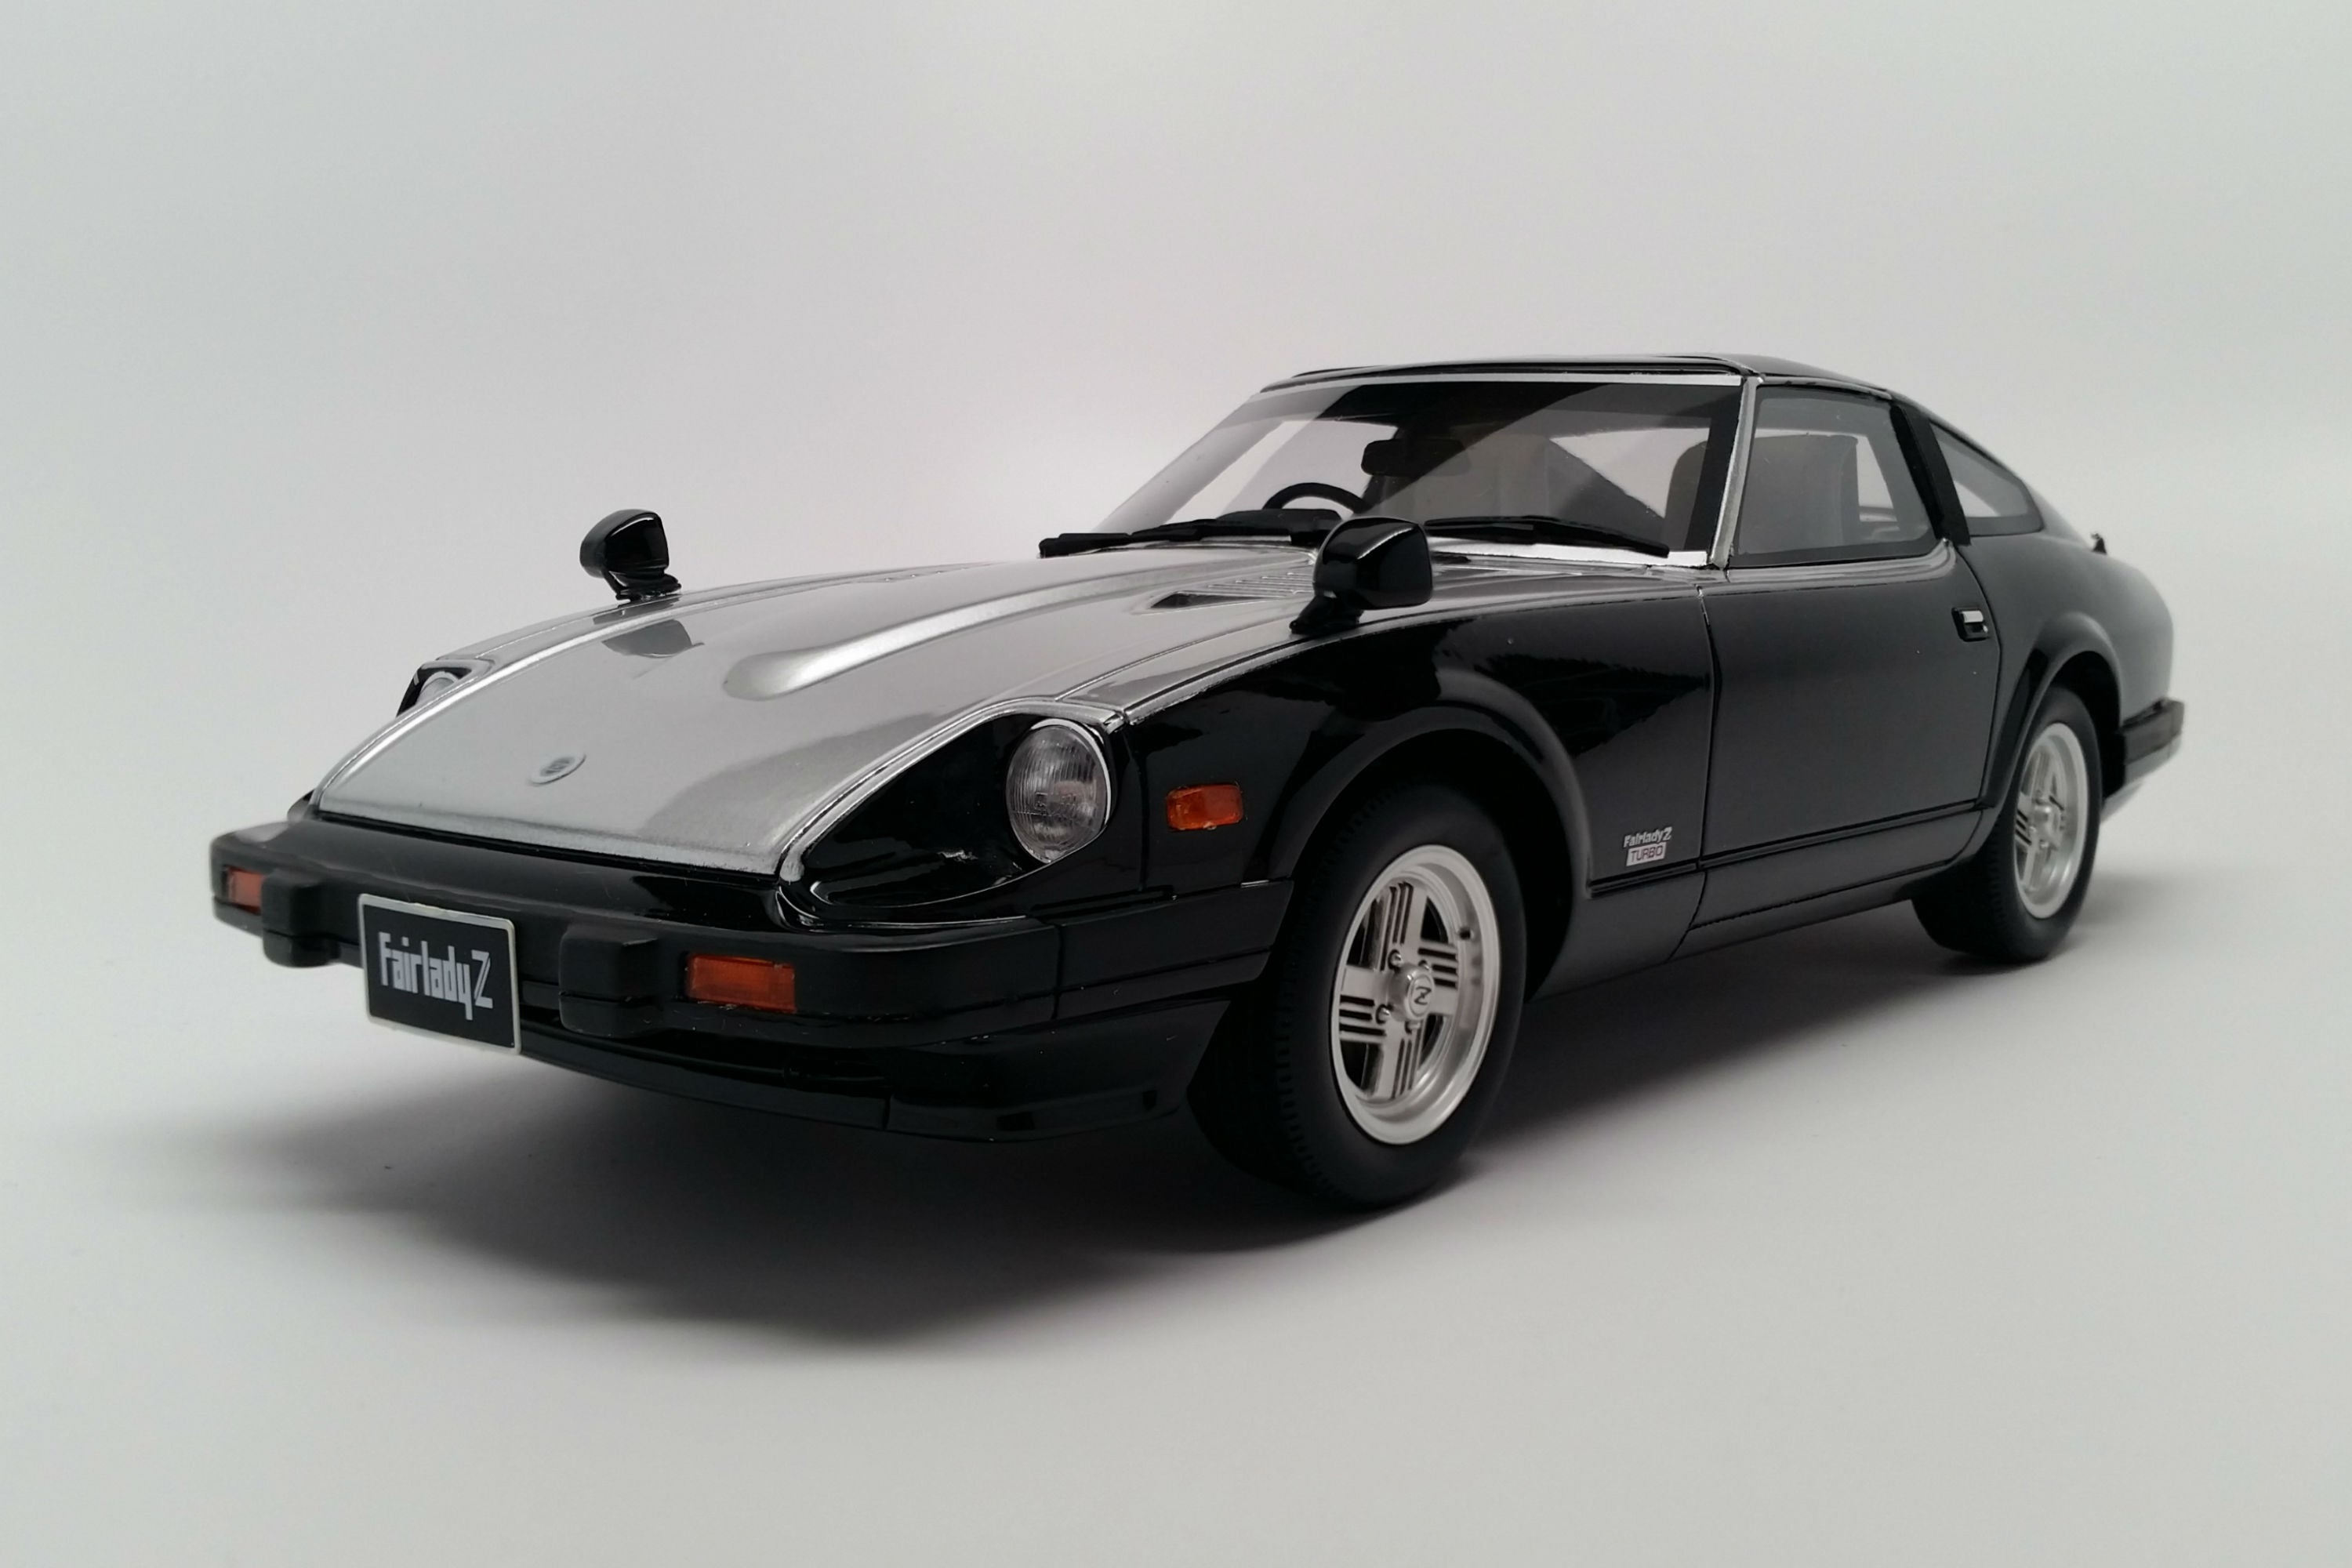 Nissan Fairlady Z-T Turbo (1983) | 1:18 Scale Model Car by Ottomobile | Front Quarter